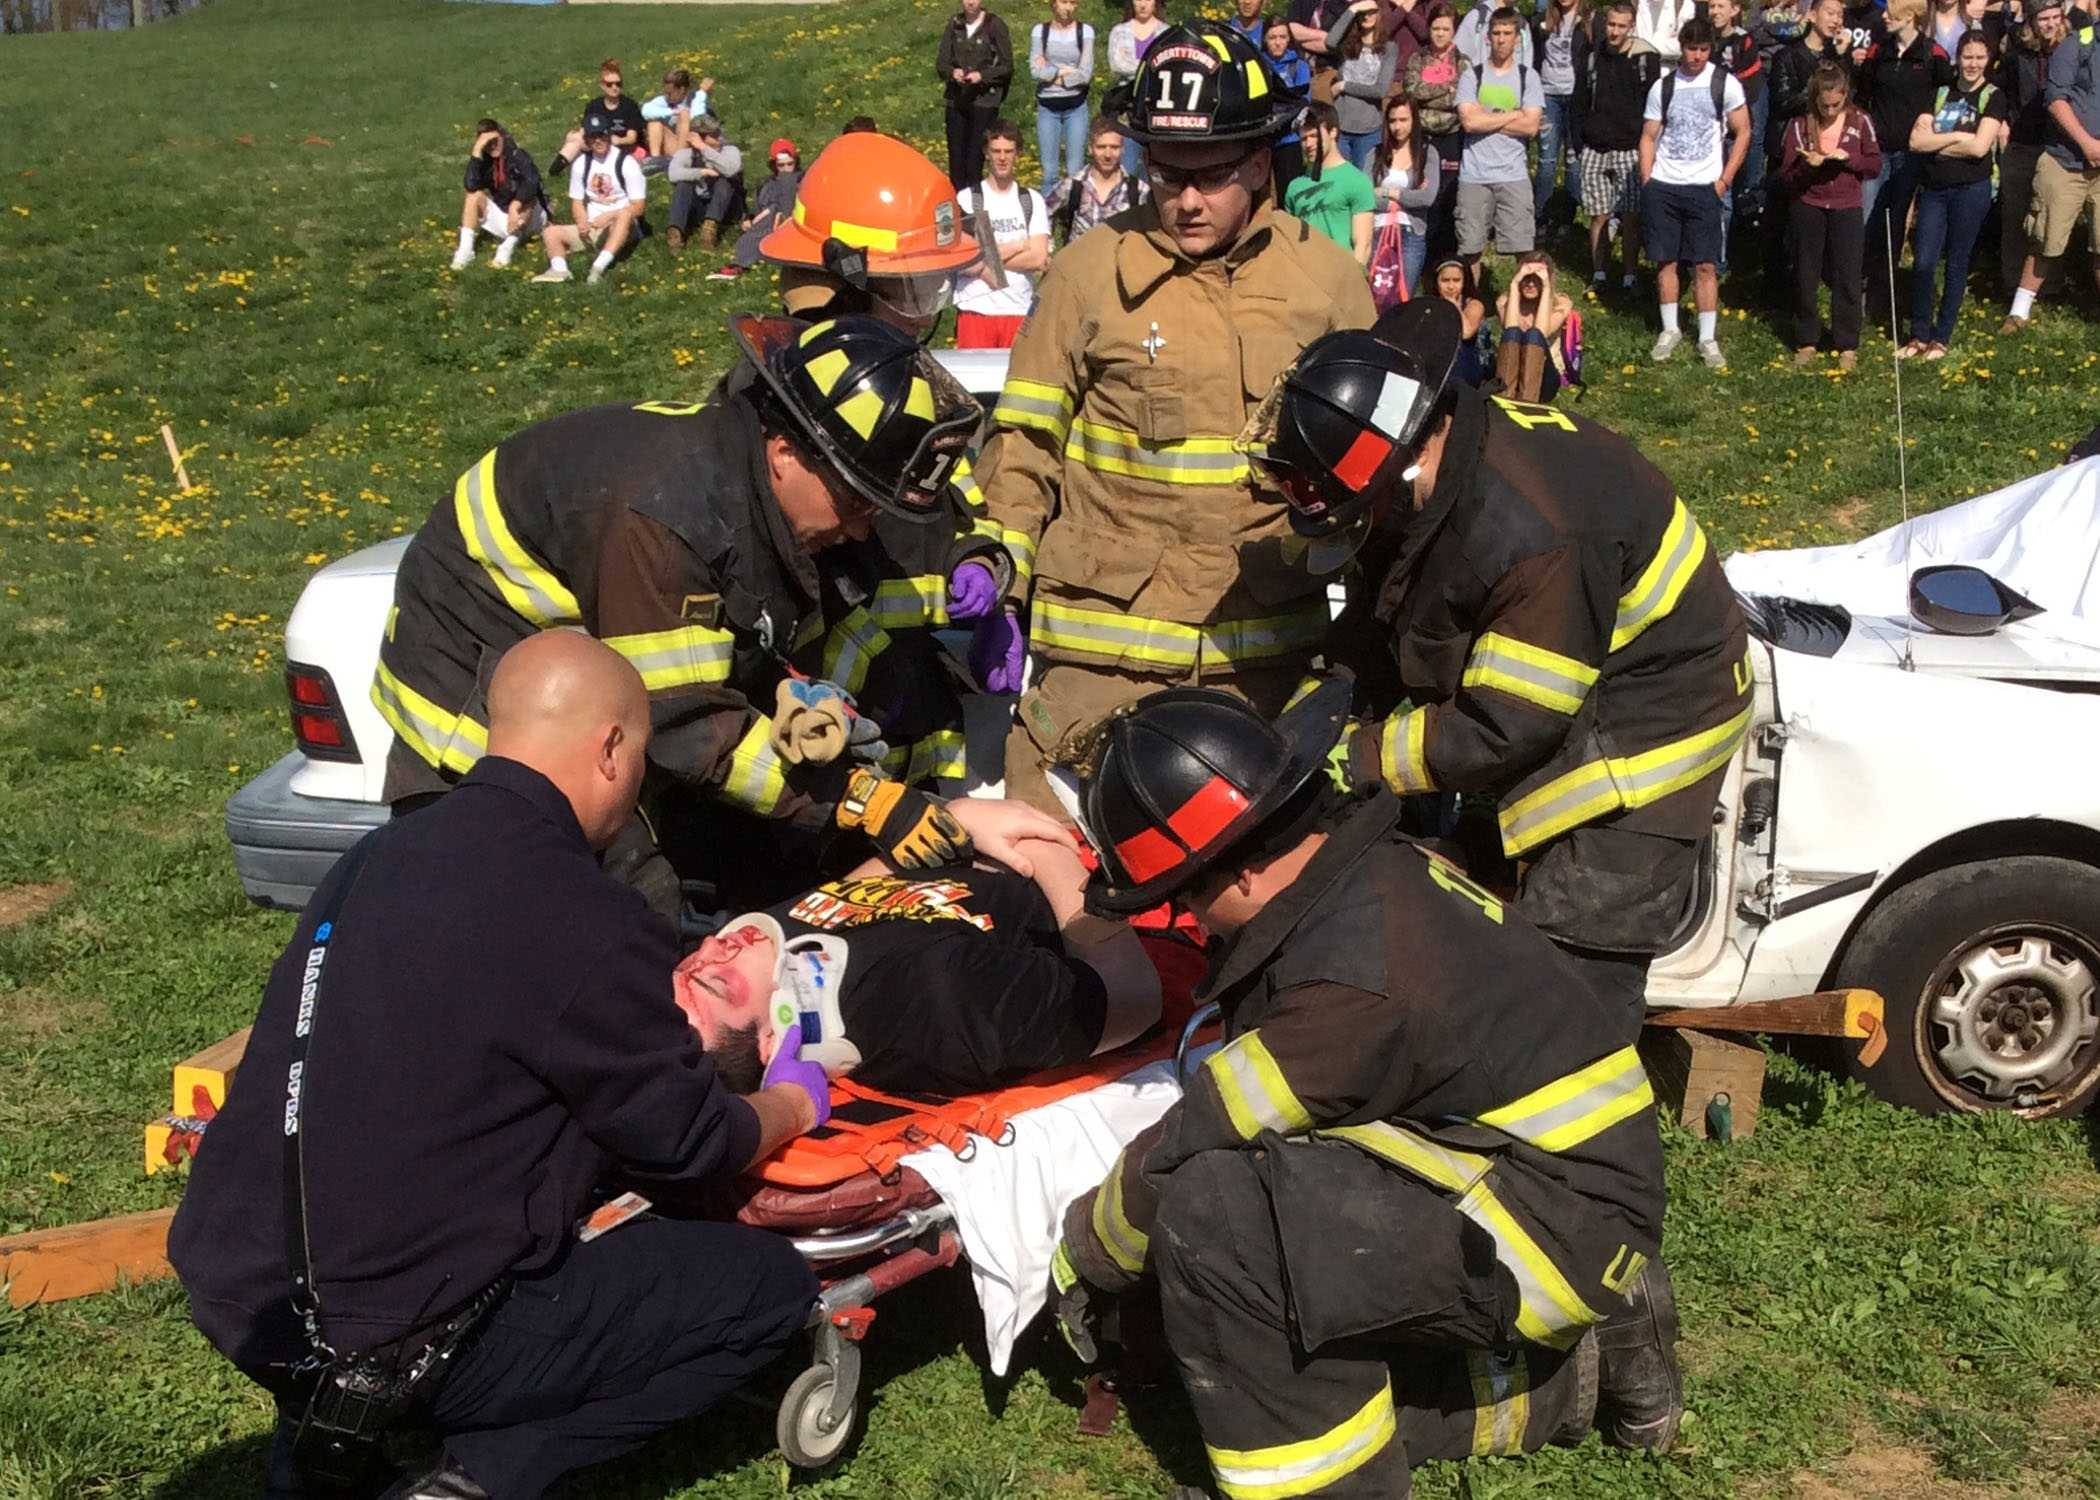 Libertytown Fire Department rescue removes Justin Knotts from the simulated crash to place him in medical care.